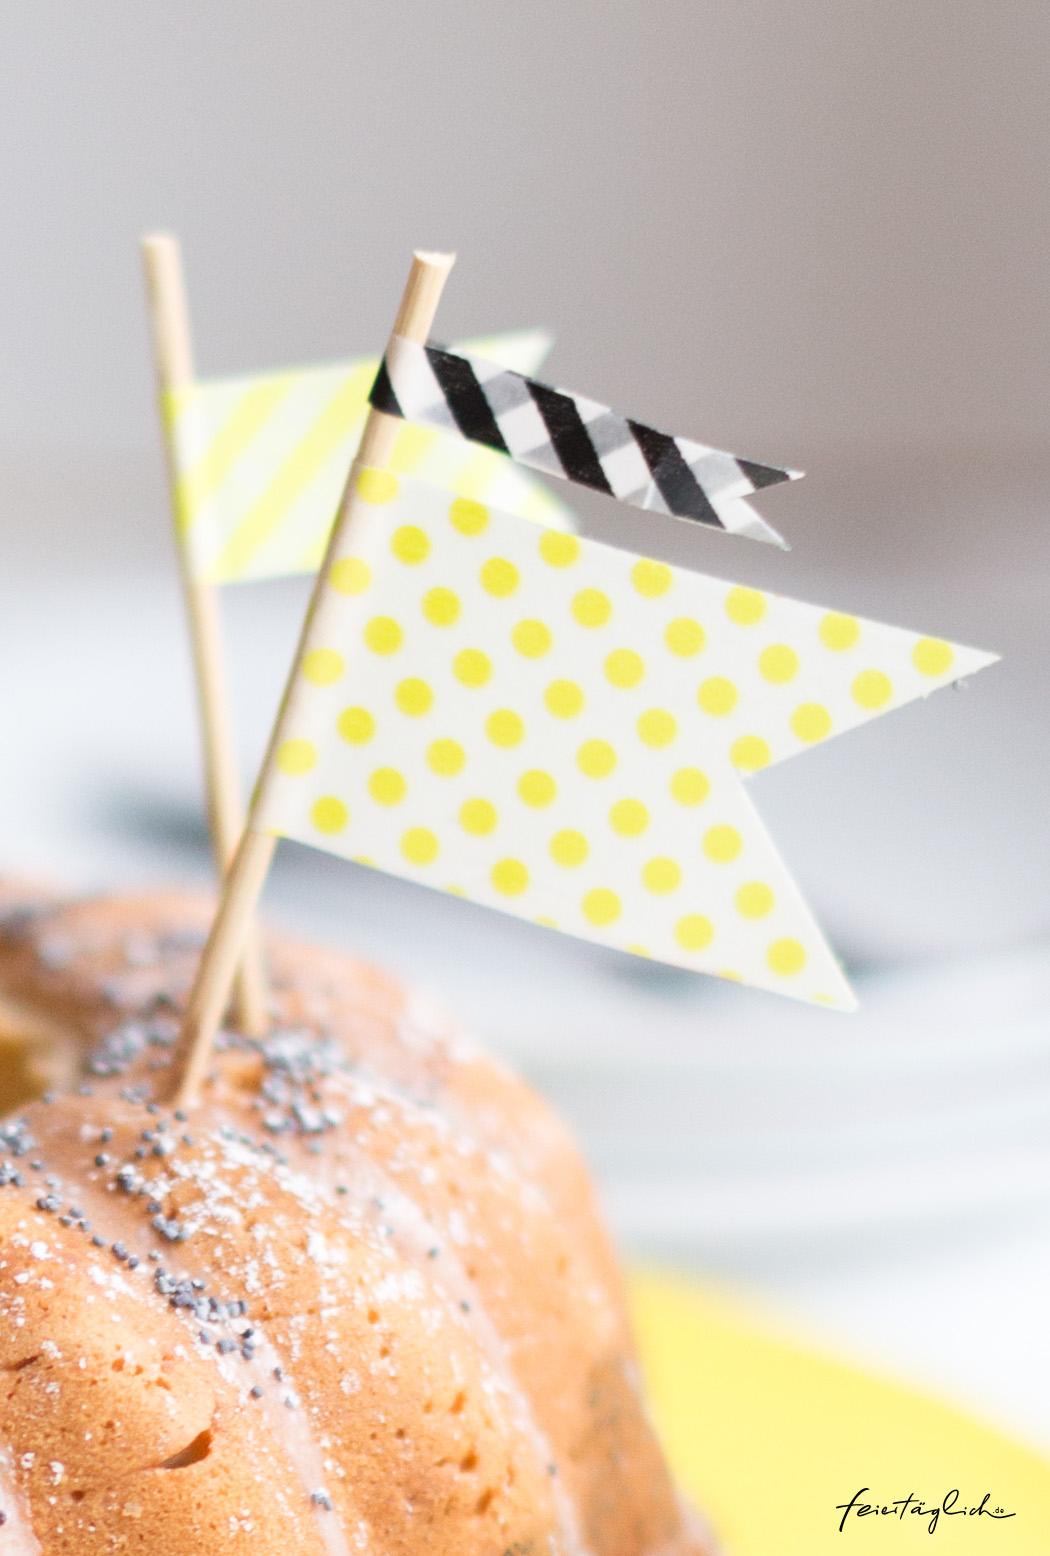 Cake-Topper, DIY mit Washi Tape, Kuchendekoration